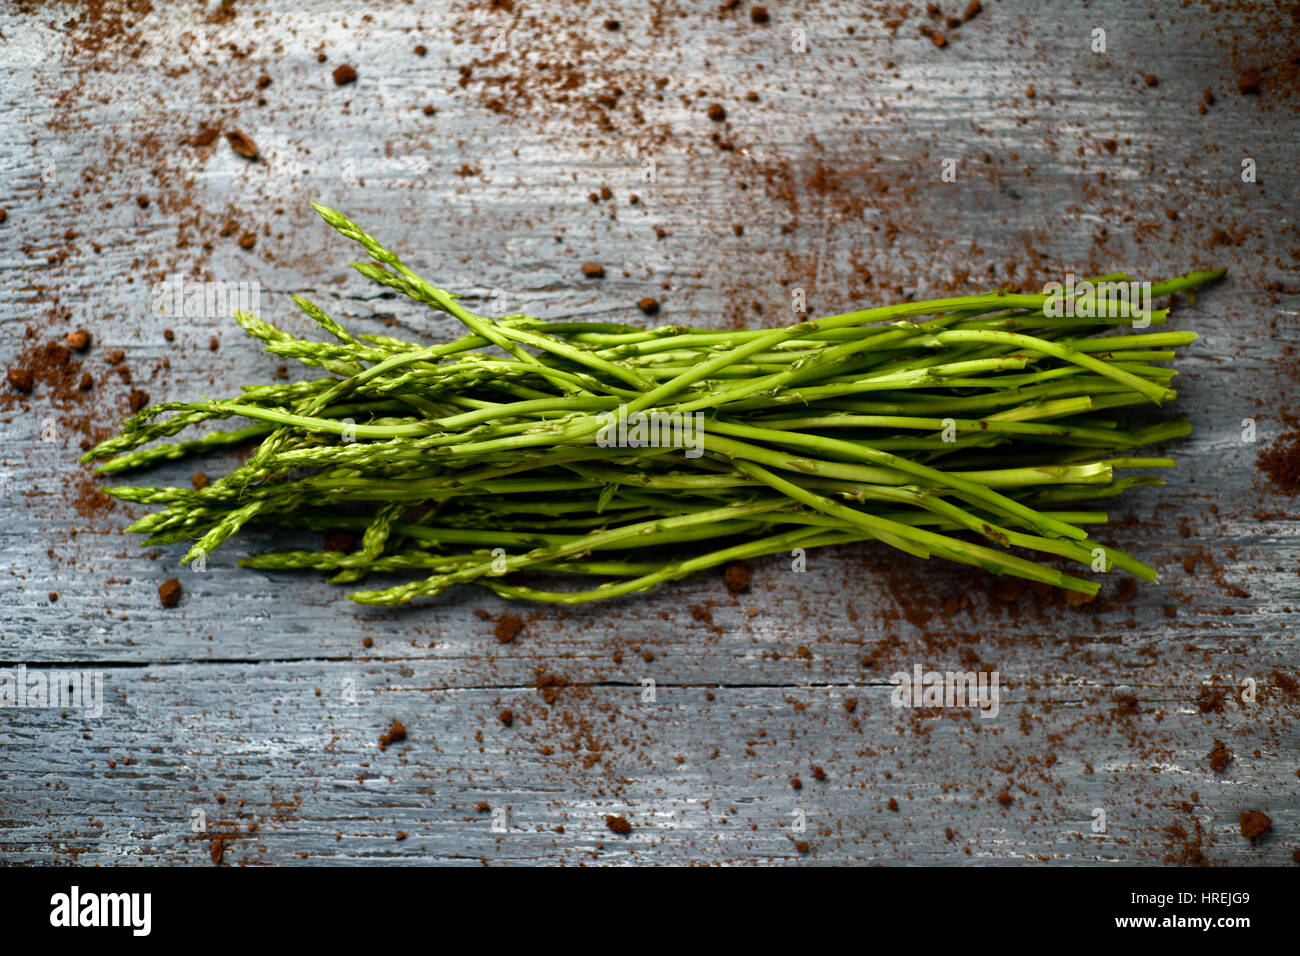 high-angle shot of a bunch of wild asparagus on a rustic wooden surface Stock Photo